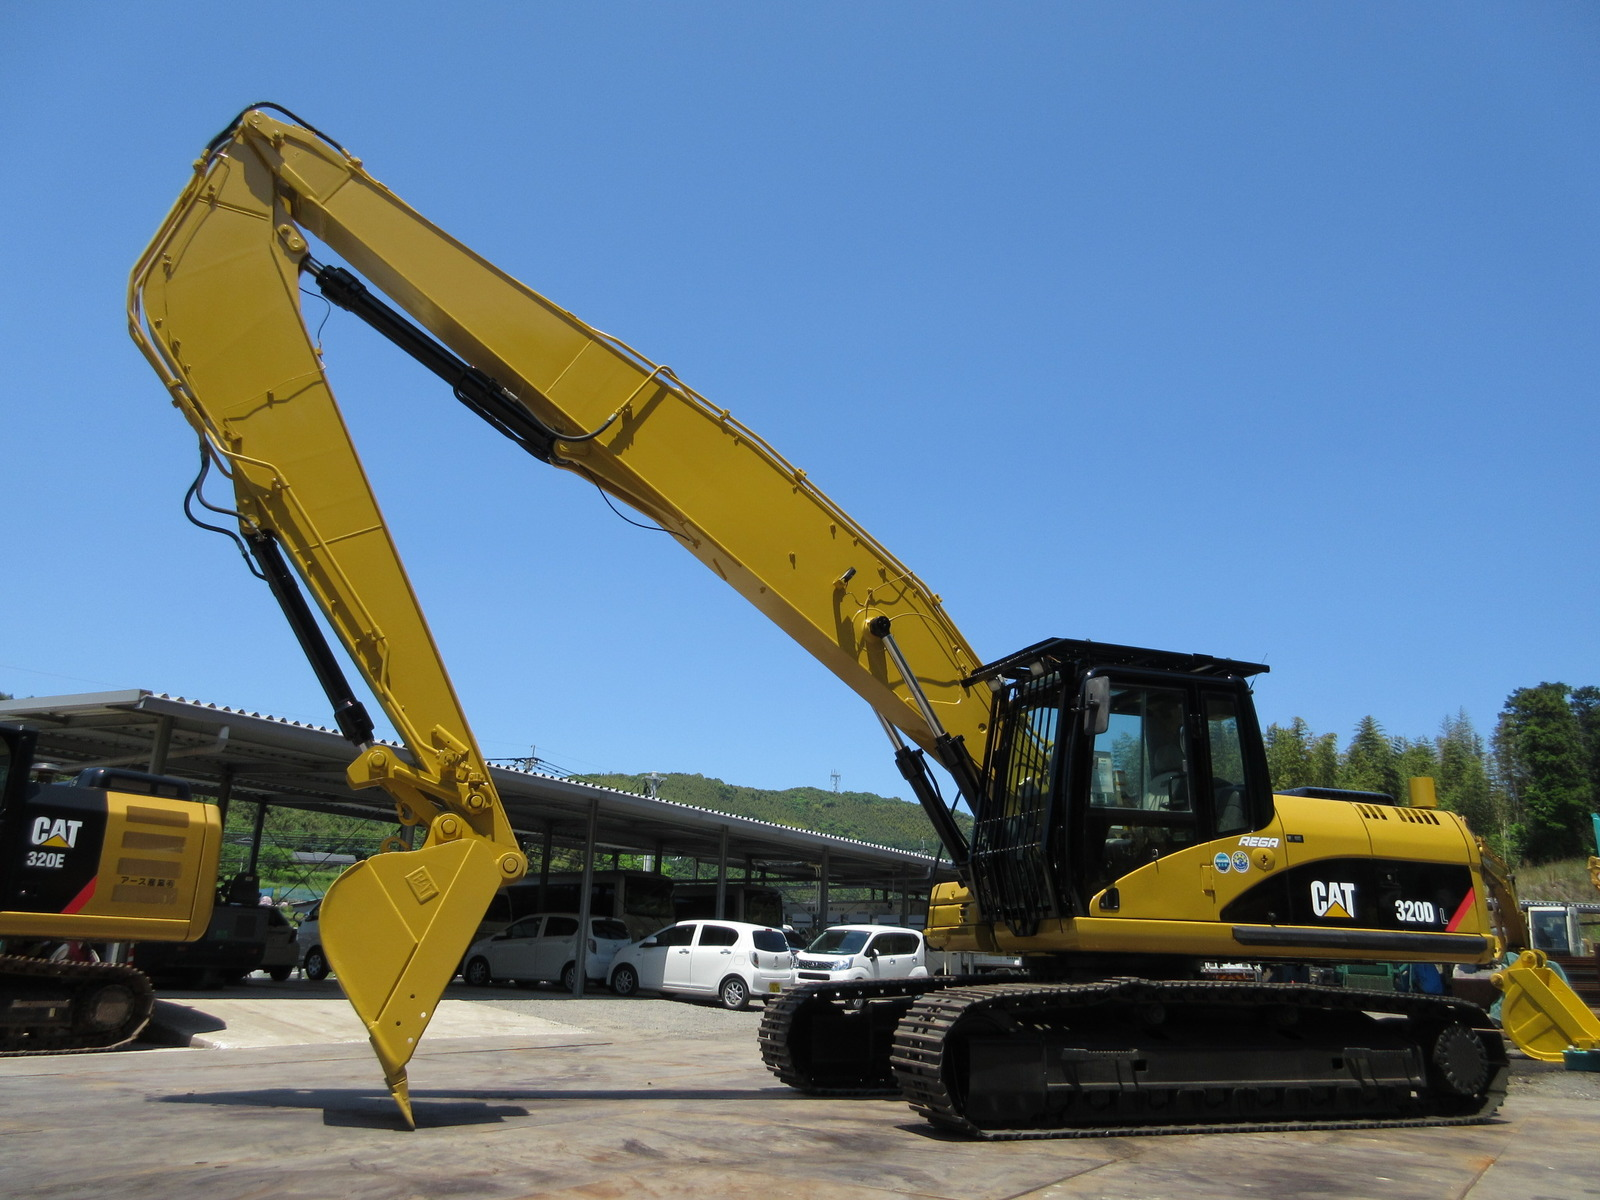 Used Construction Machine used Excavator CAT 320DL Photos